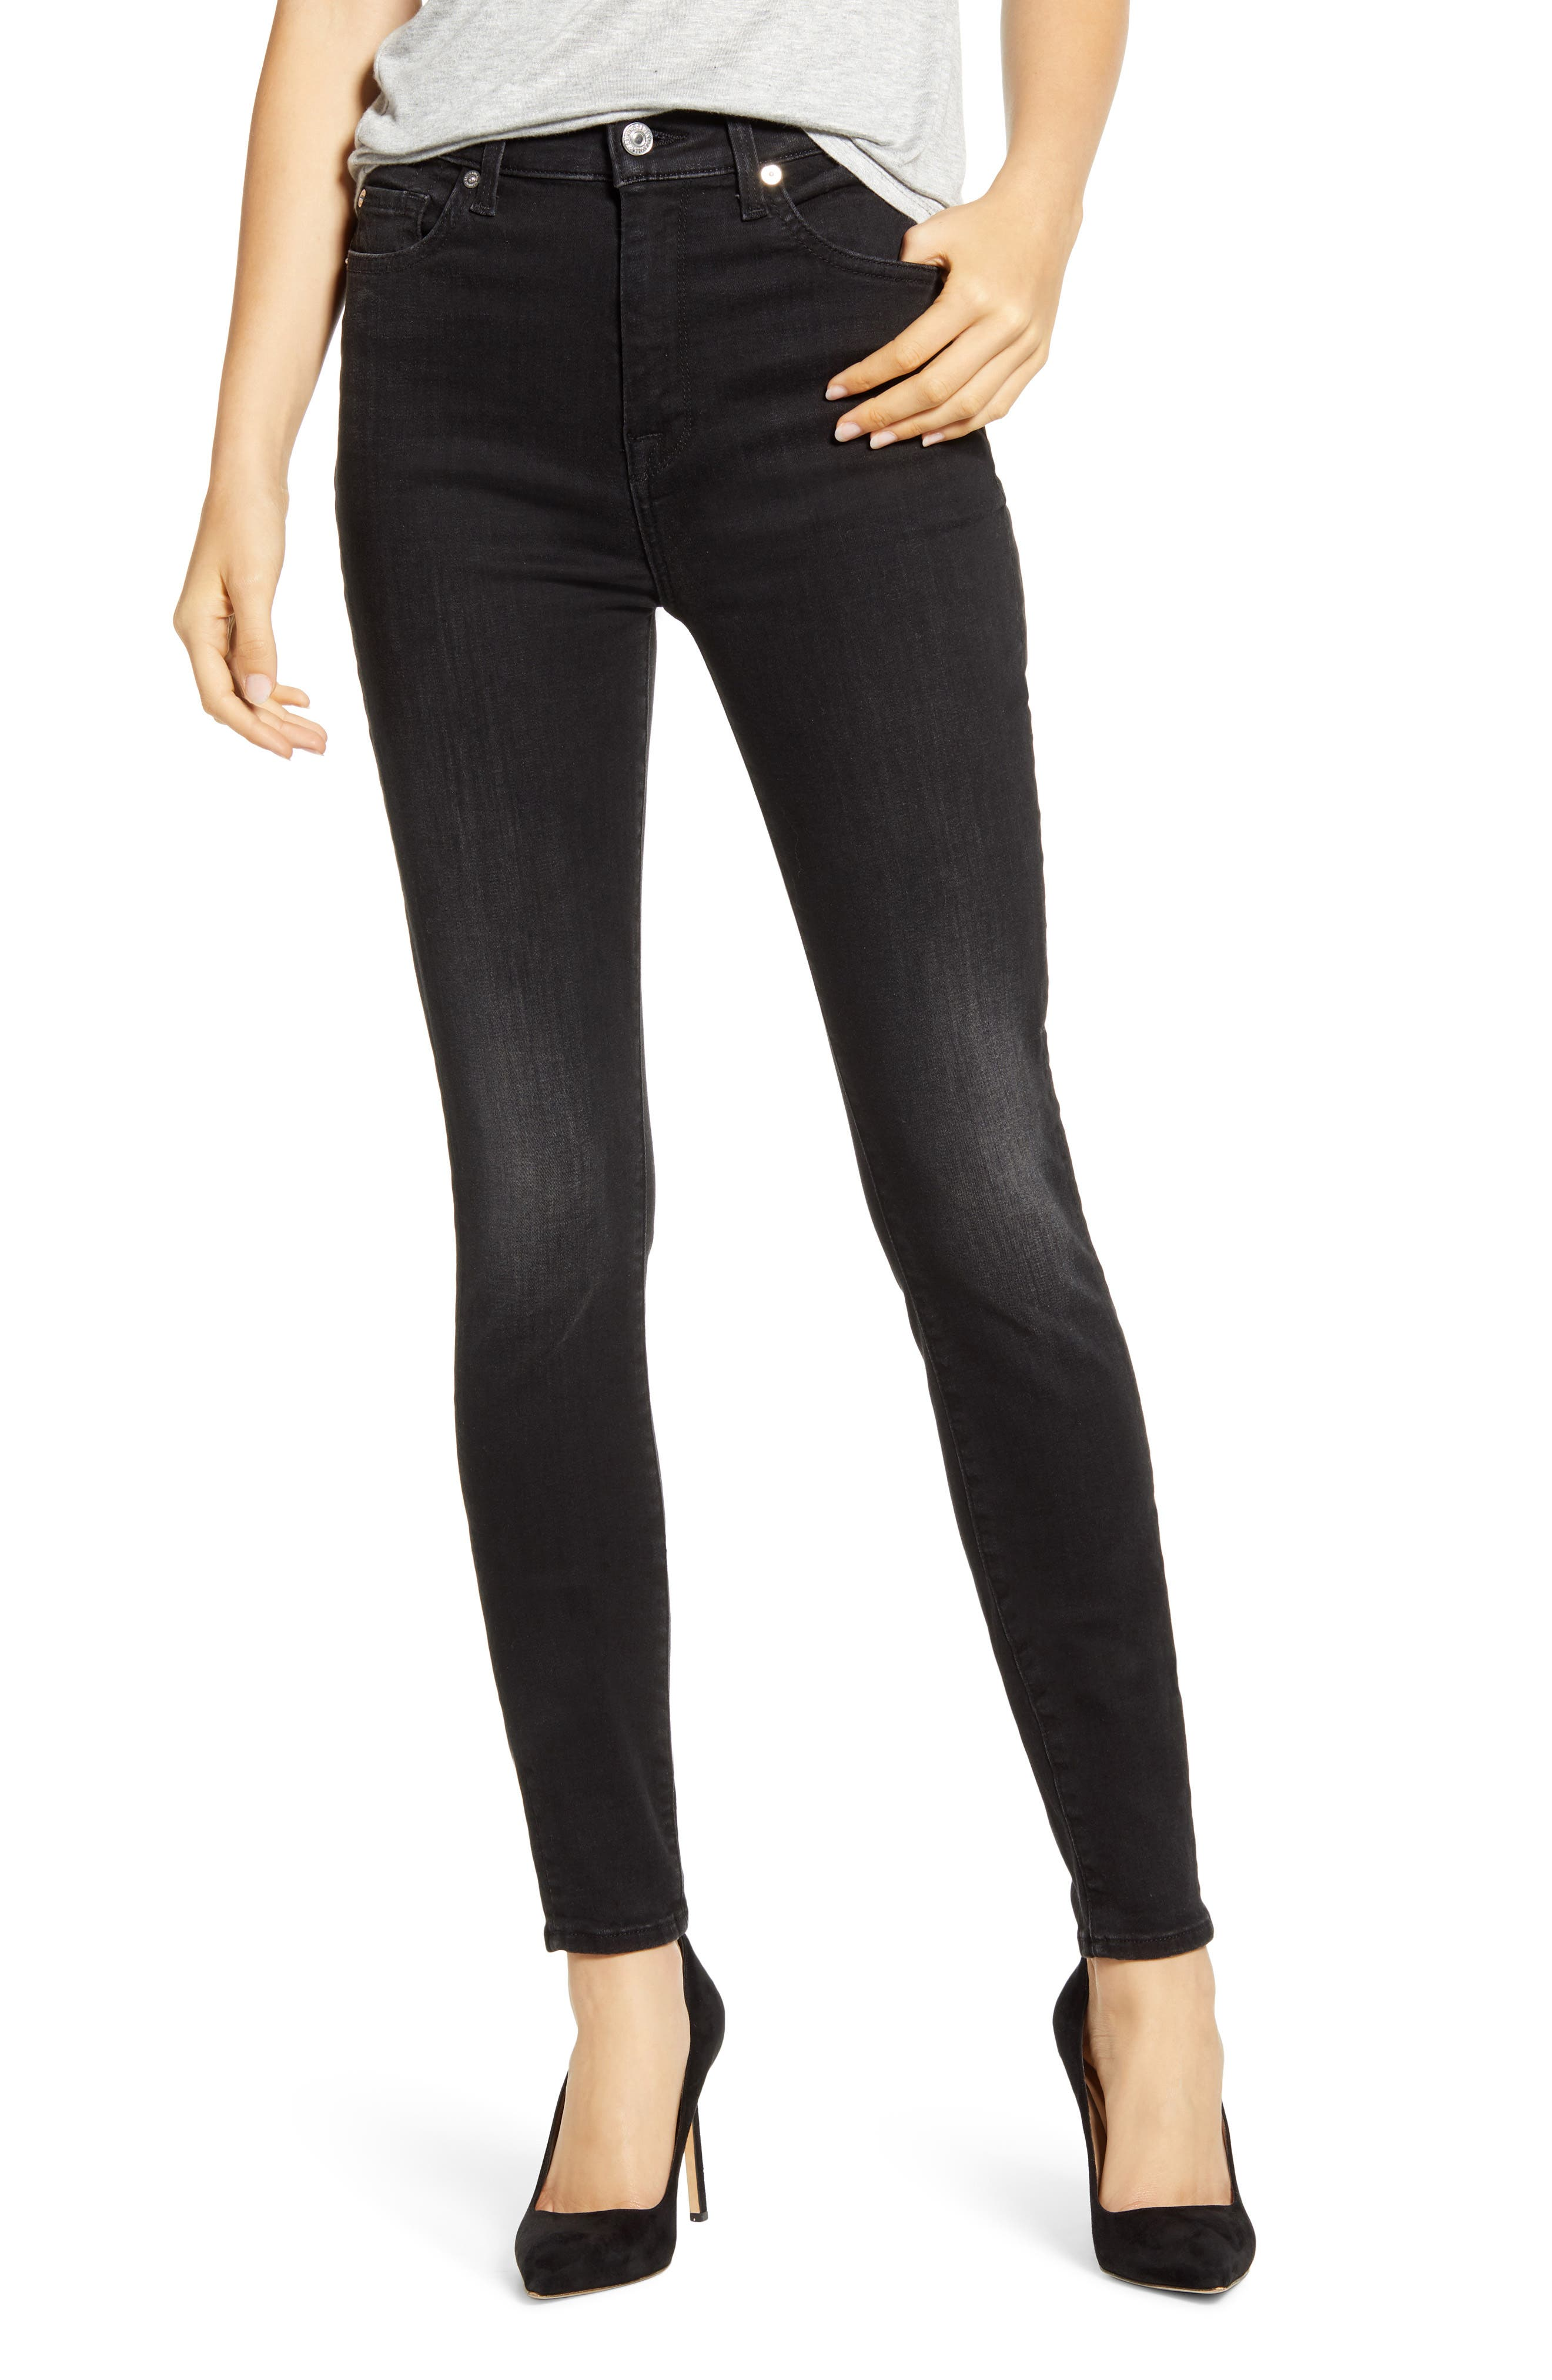 Image of 7 For All Mankind High Waist Ankle Skinny Jeans